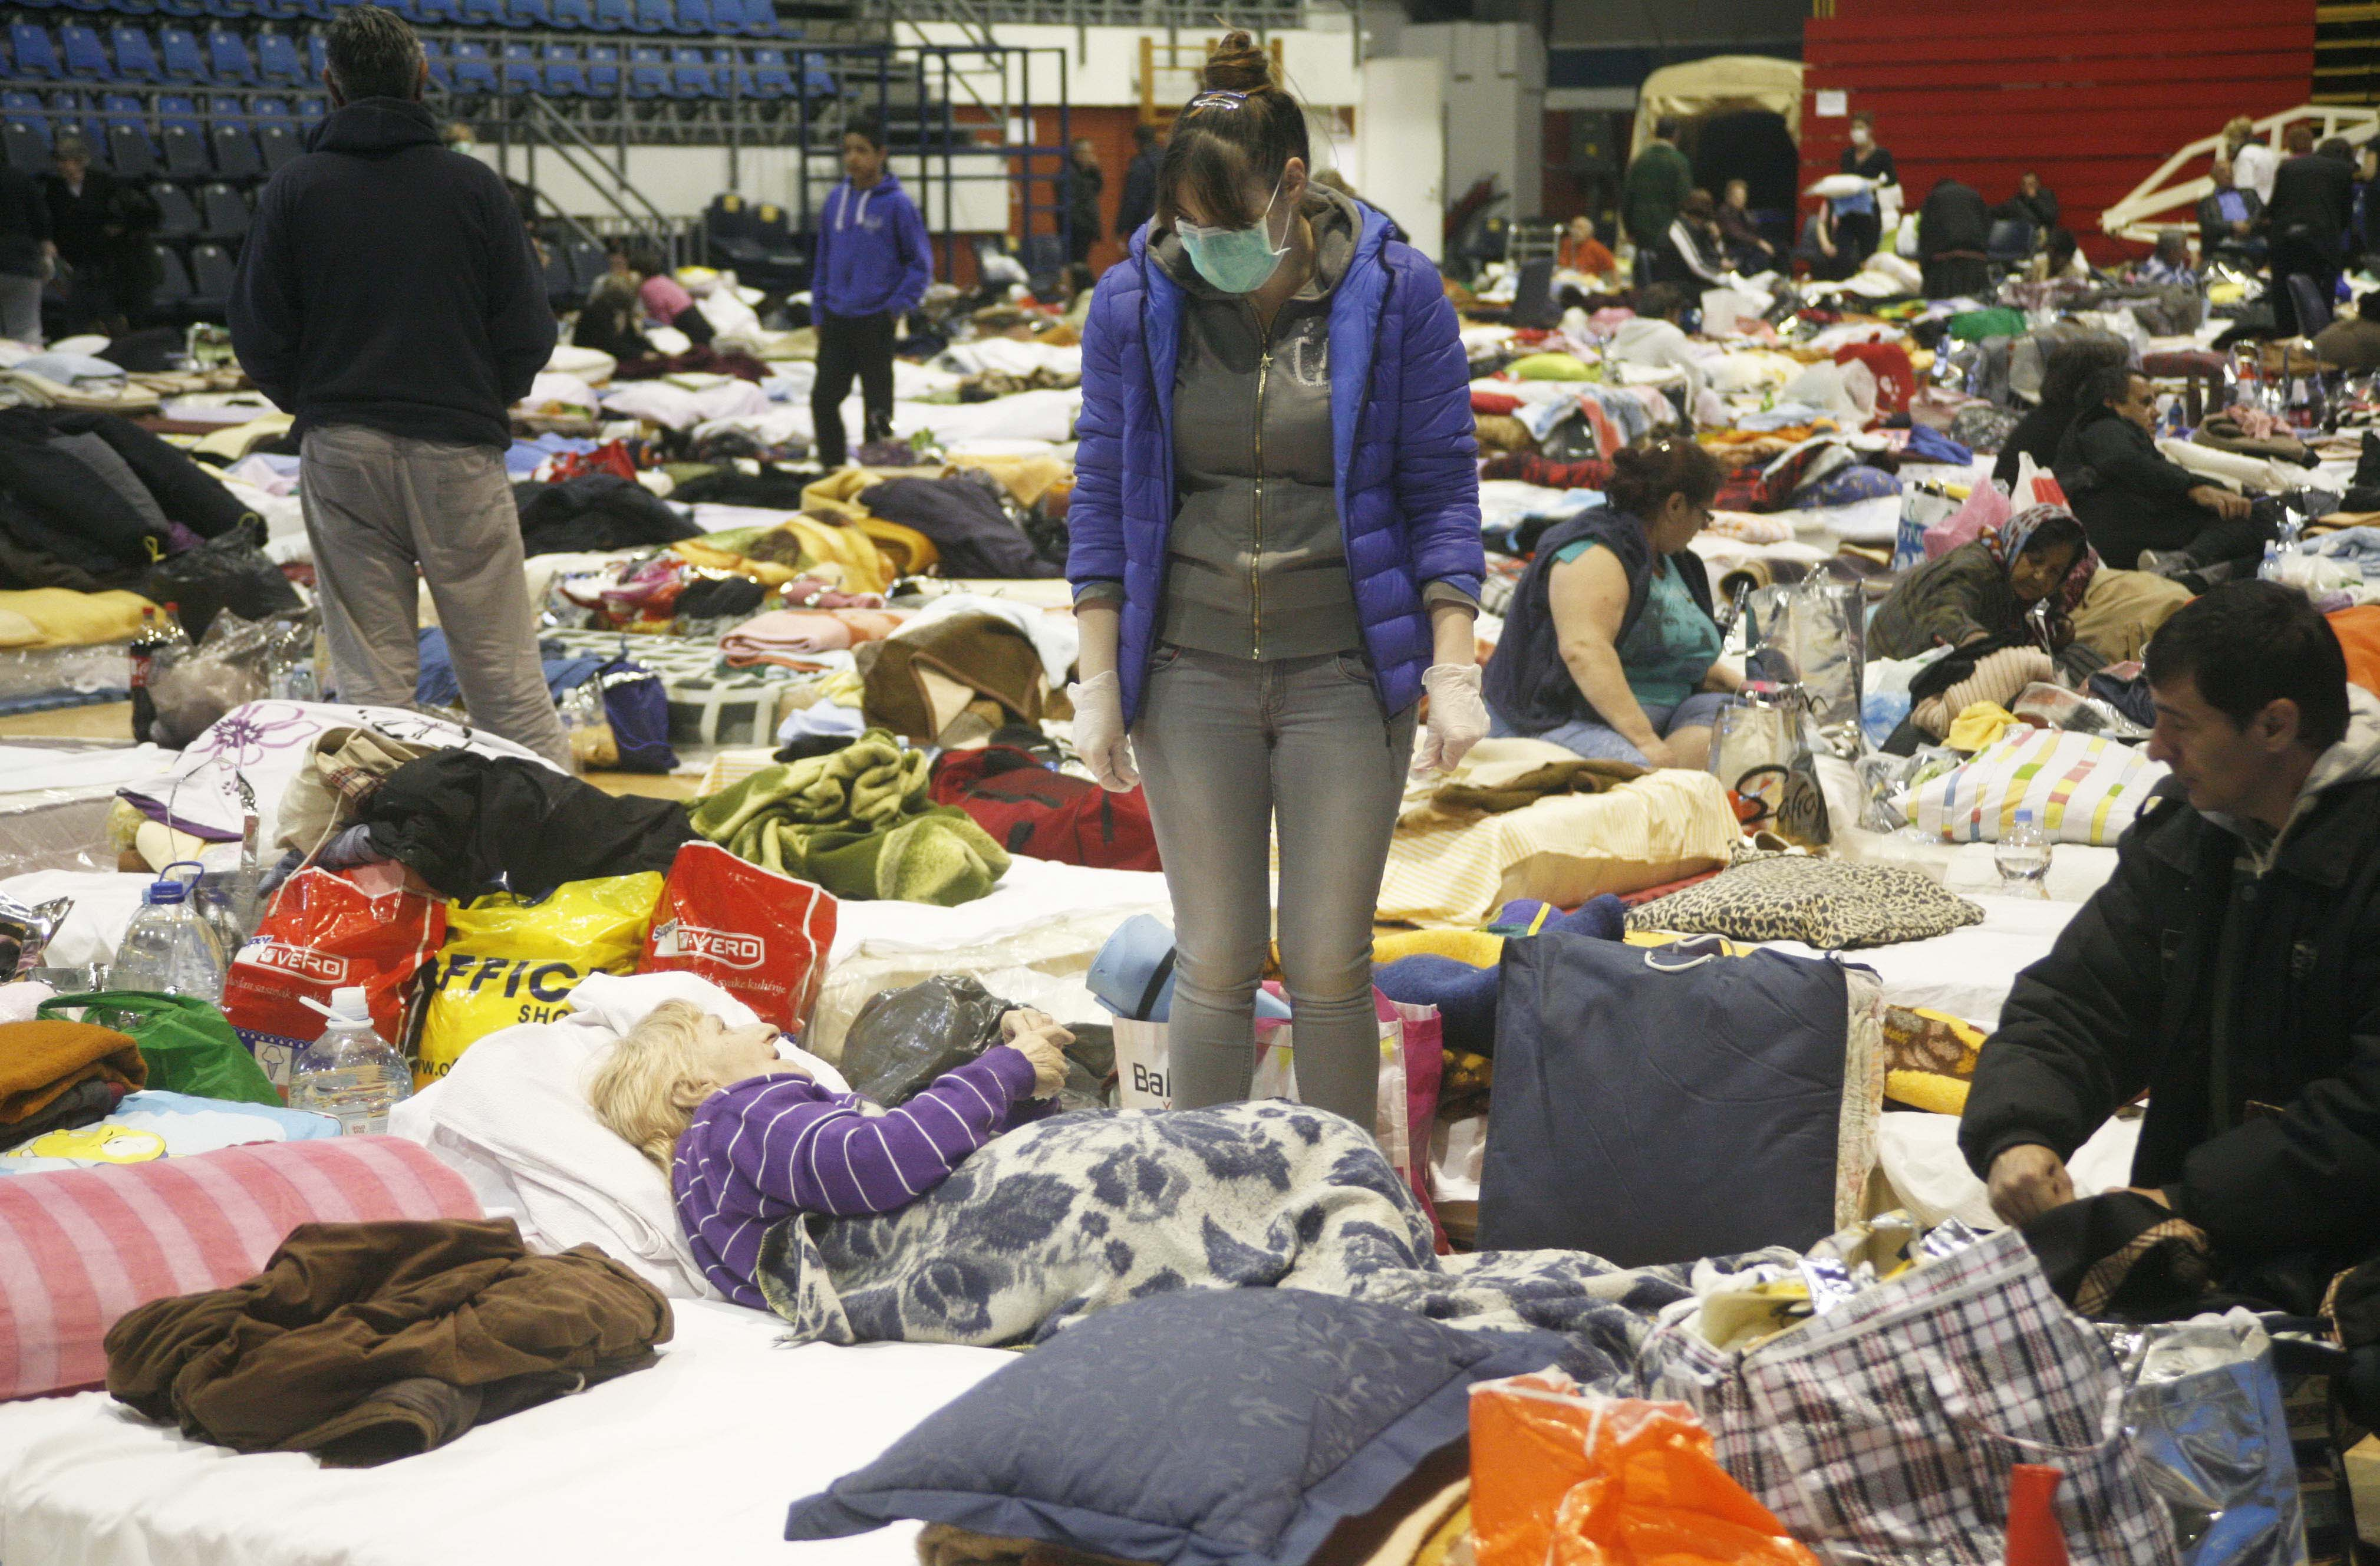 Evacuation center in Serbia, Bosnia and Herzegovina.jpg